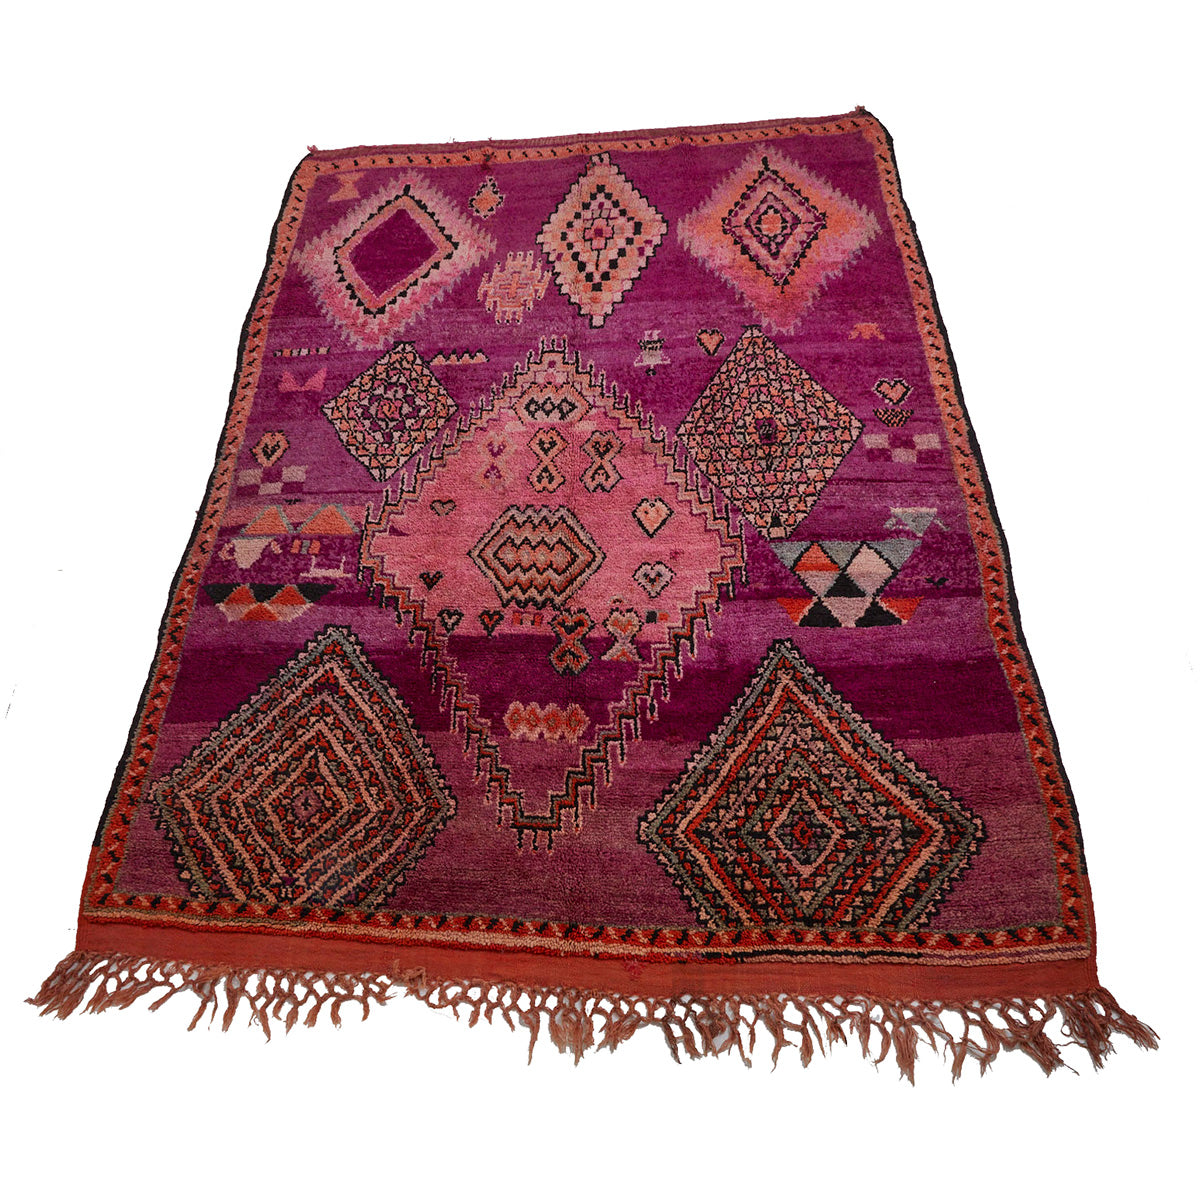 Modern Moroccan diamond rug in shades of pink and purple - Kantara | Moroccan Rugs